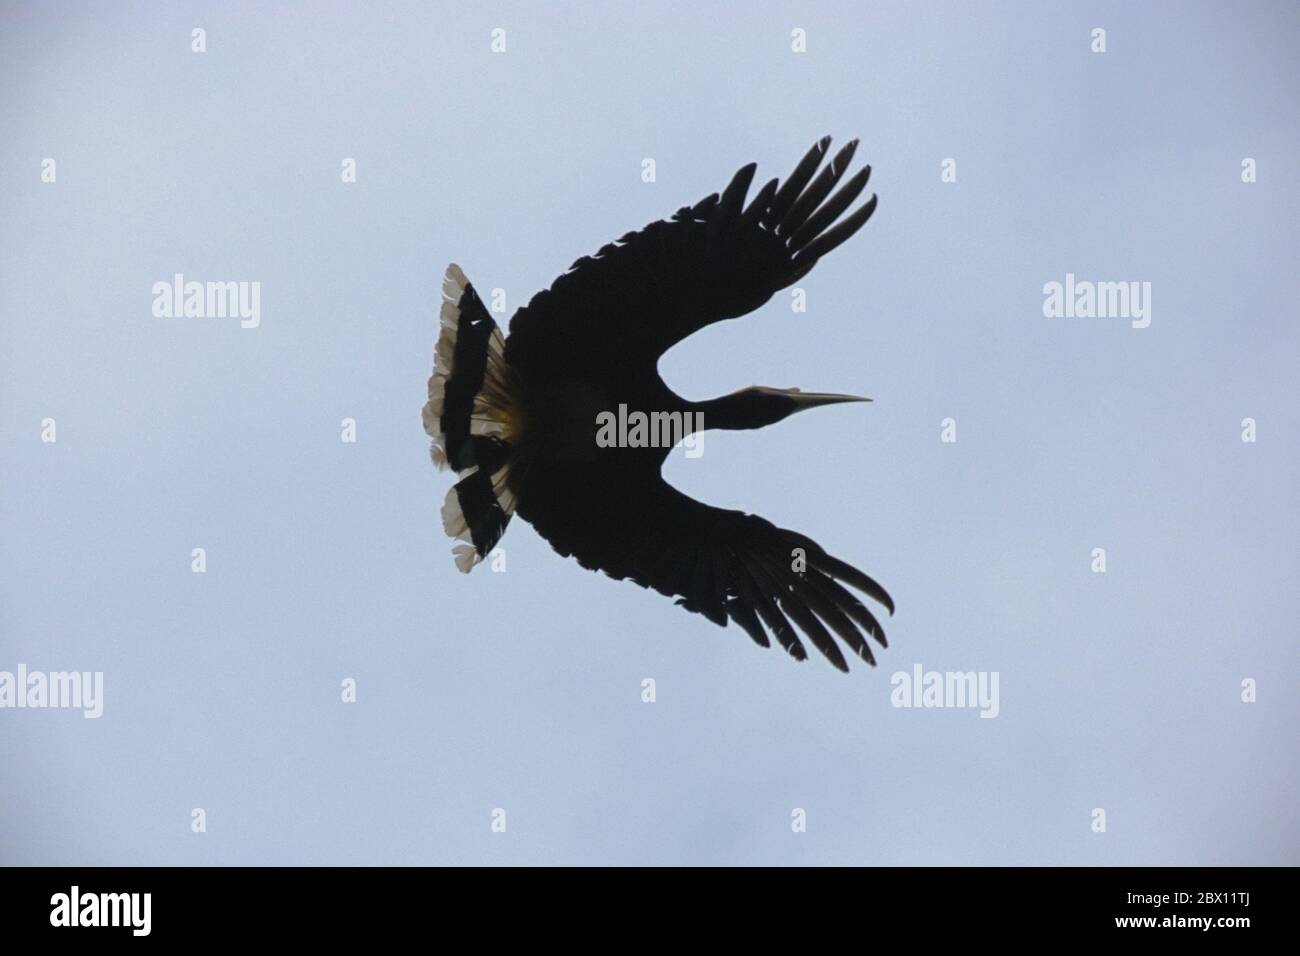 Rhinoceros Hornbill Flying High Resolution Stock Photography And Images Alamy